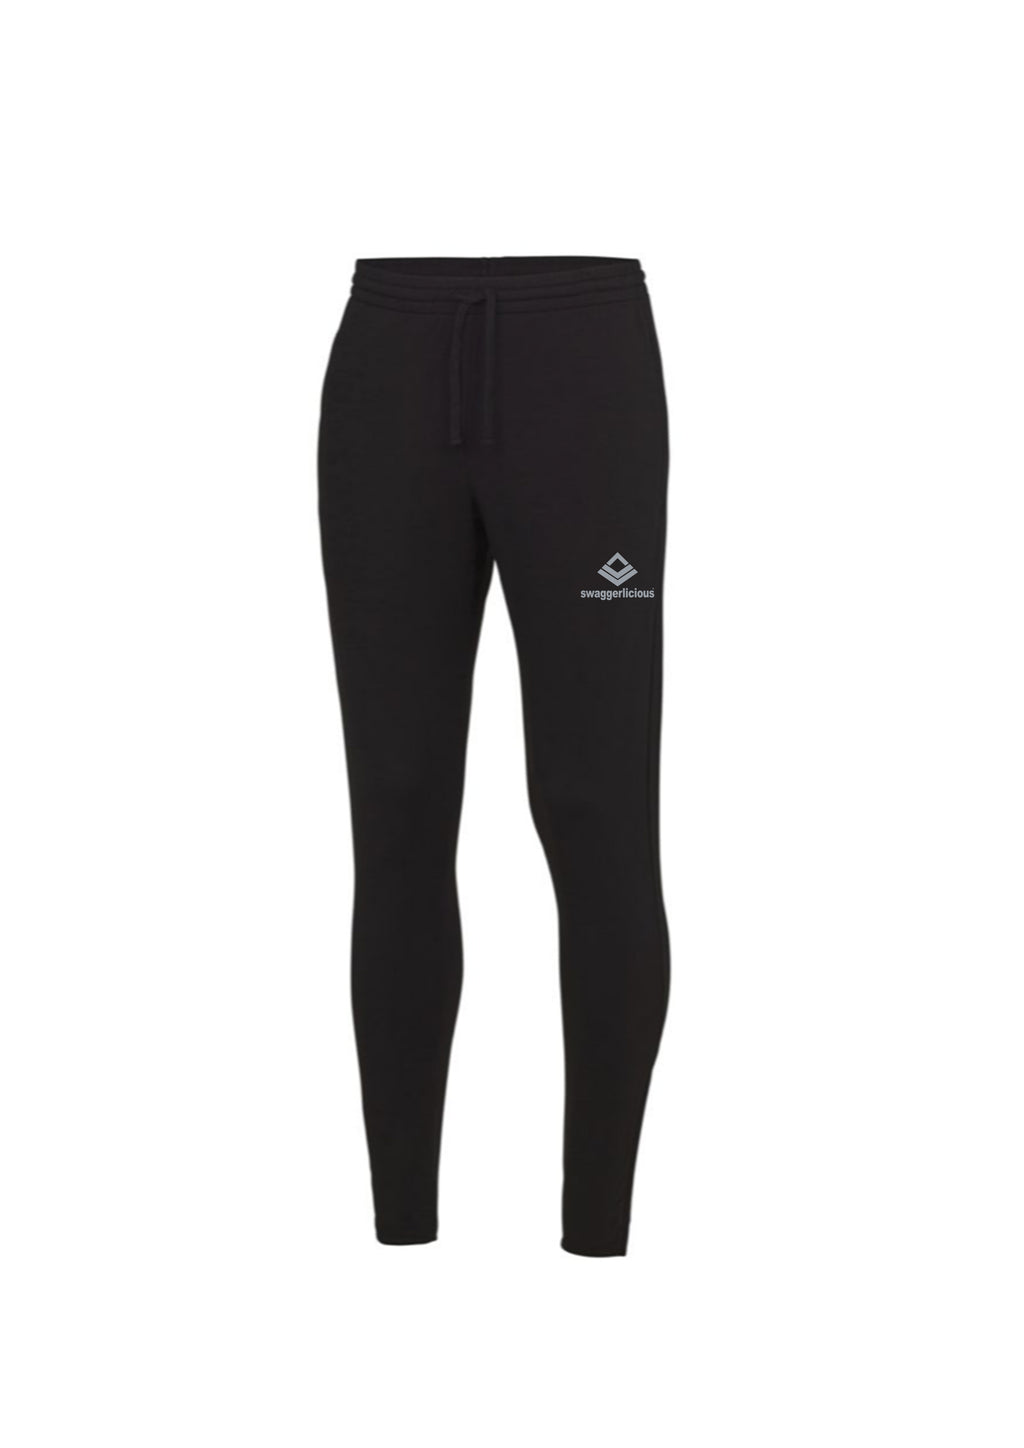 Swaggerlicious Cool Jet Black Jogging Pants with Silver Logo